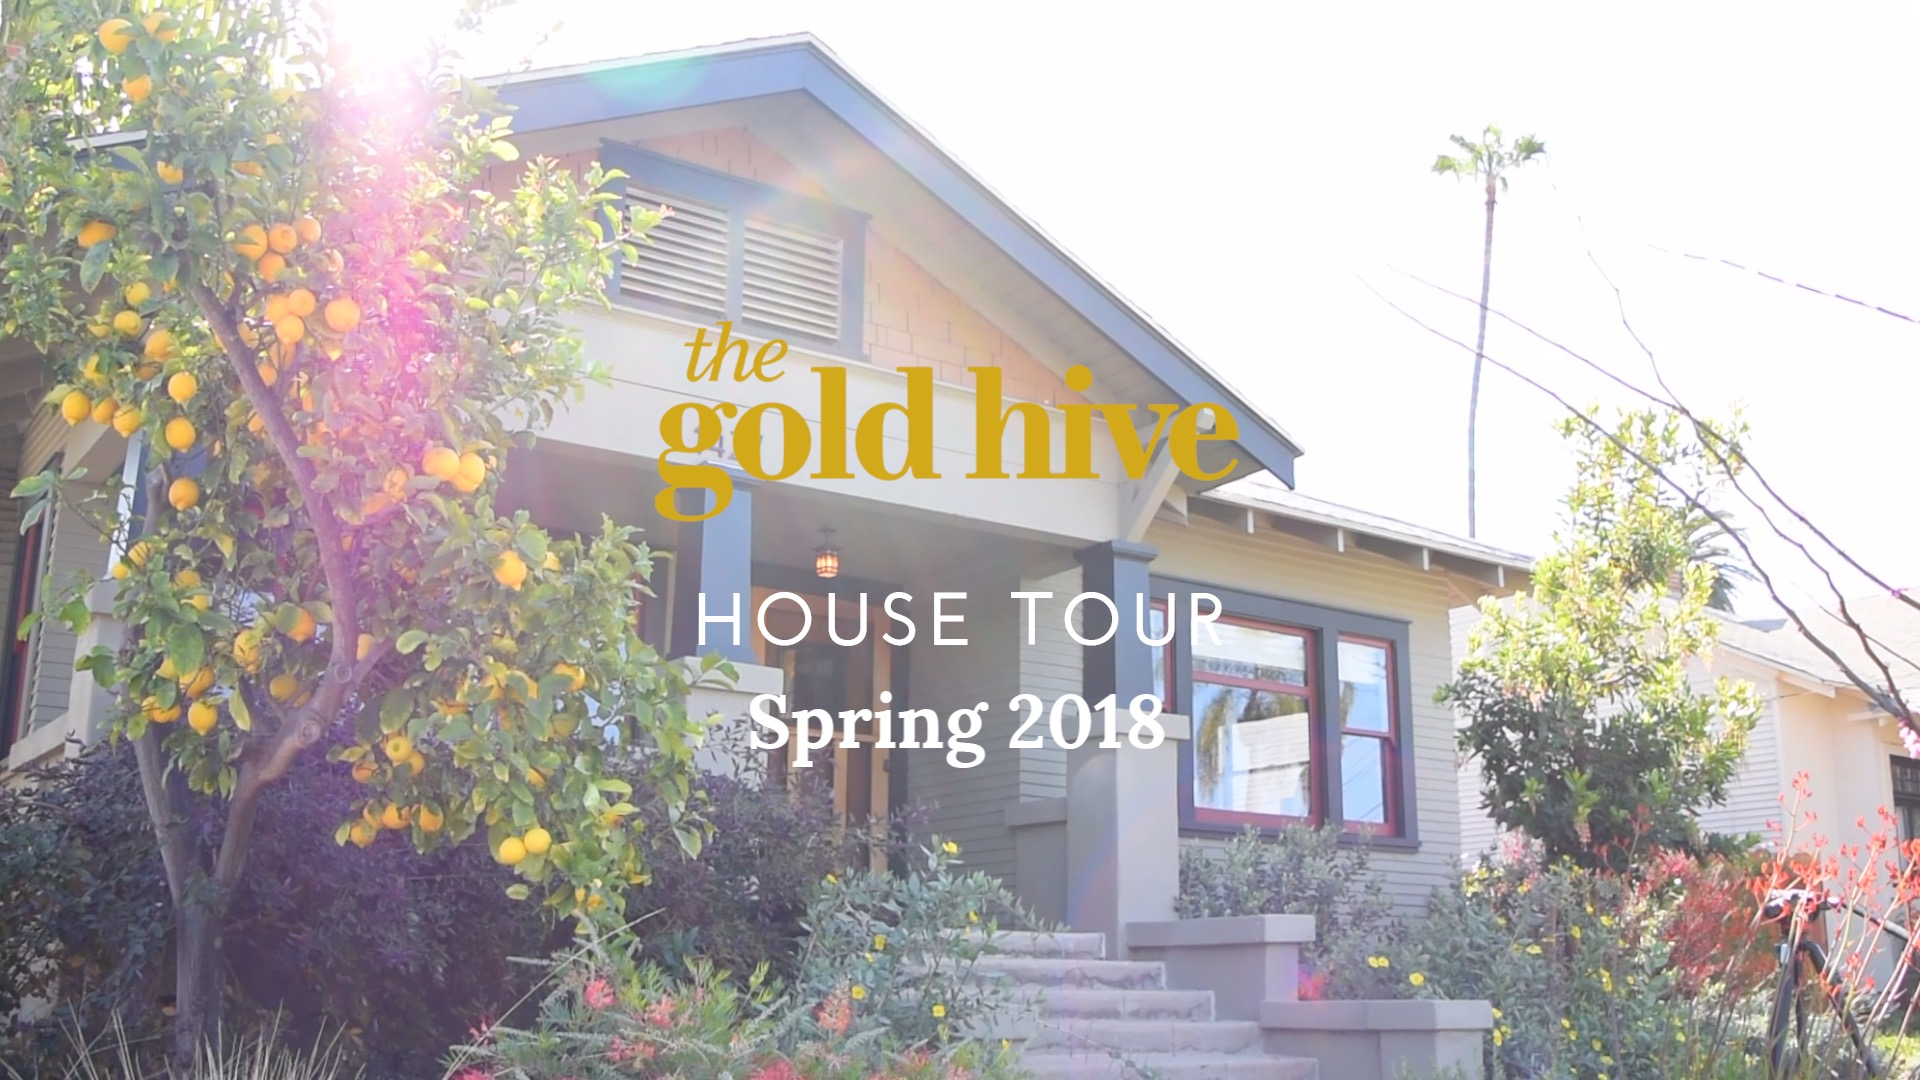 The Gold Hive Spring 2018 House Tour.jpg